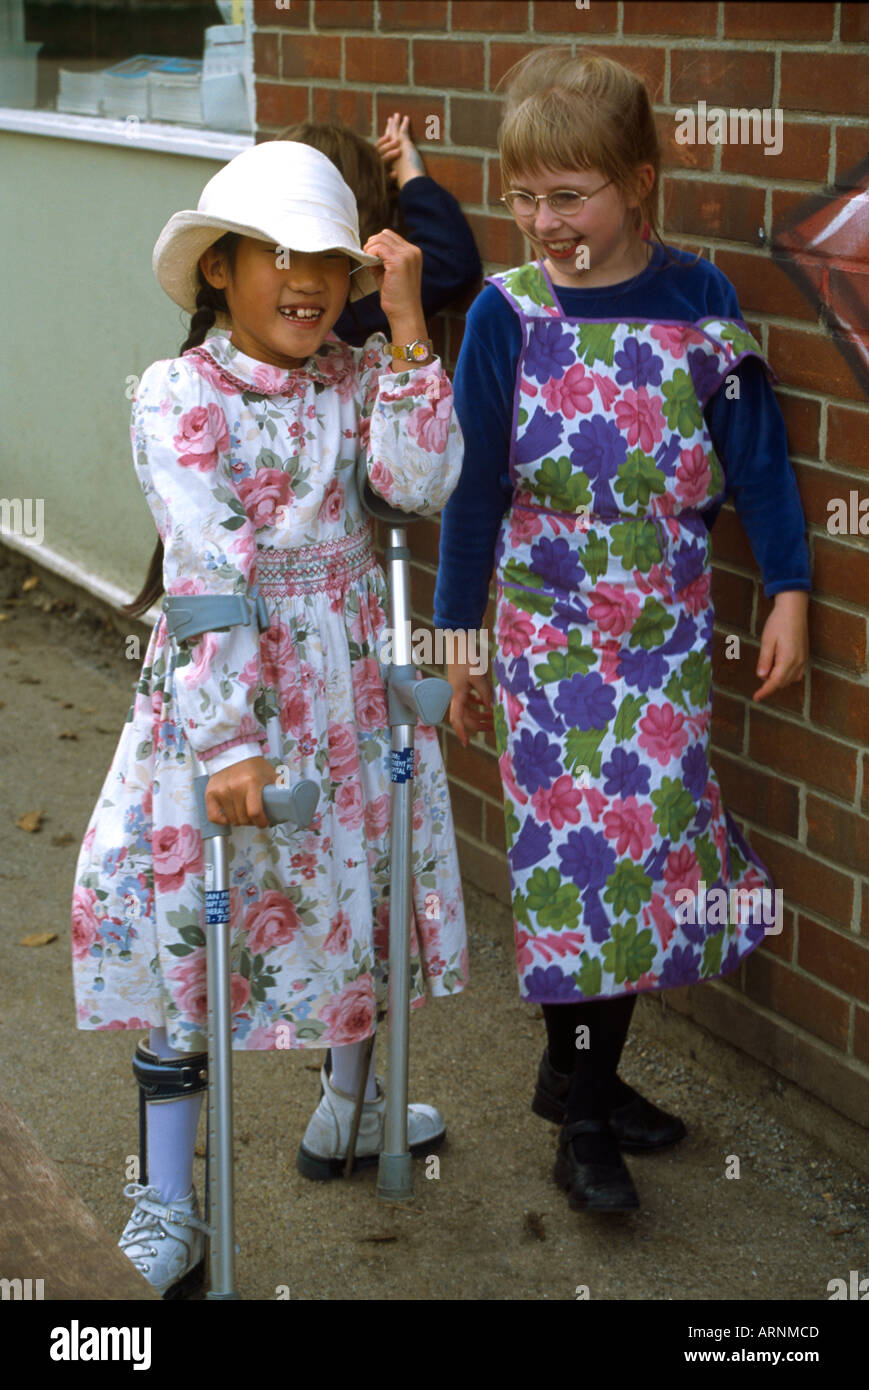 Children Dressed Up As Characters On Book Day Disabled Child Playing - Stock Image